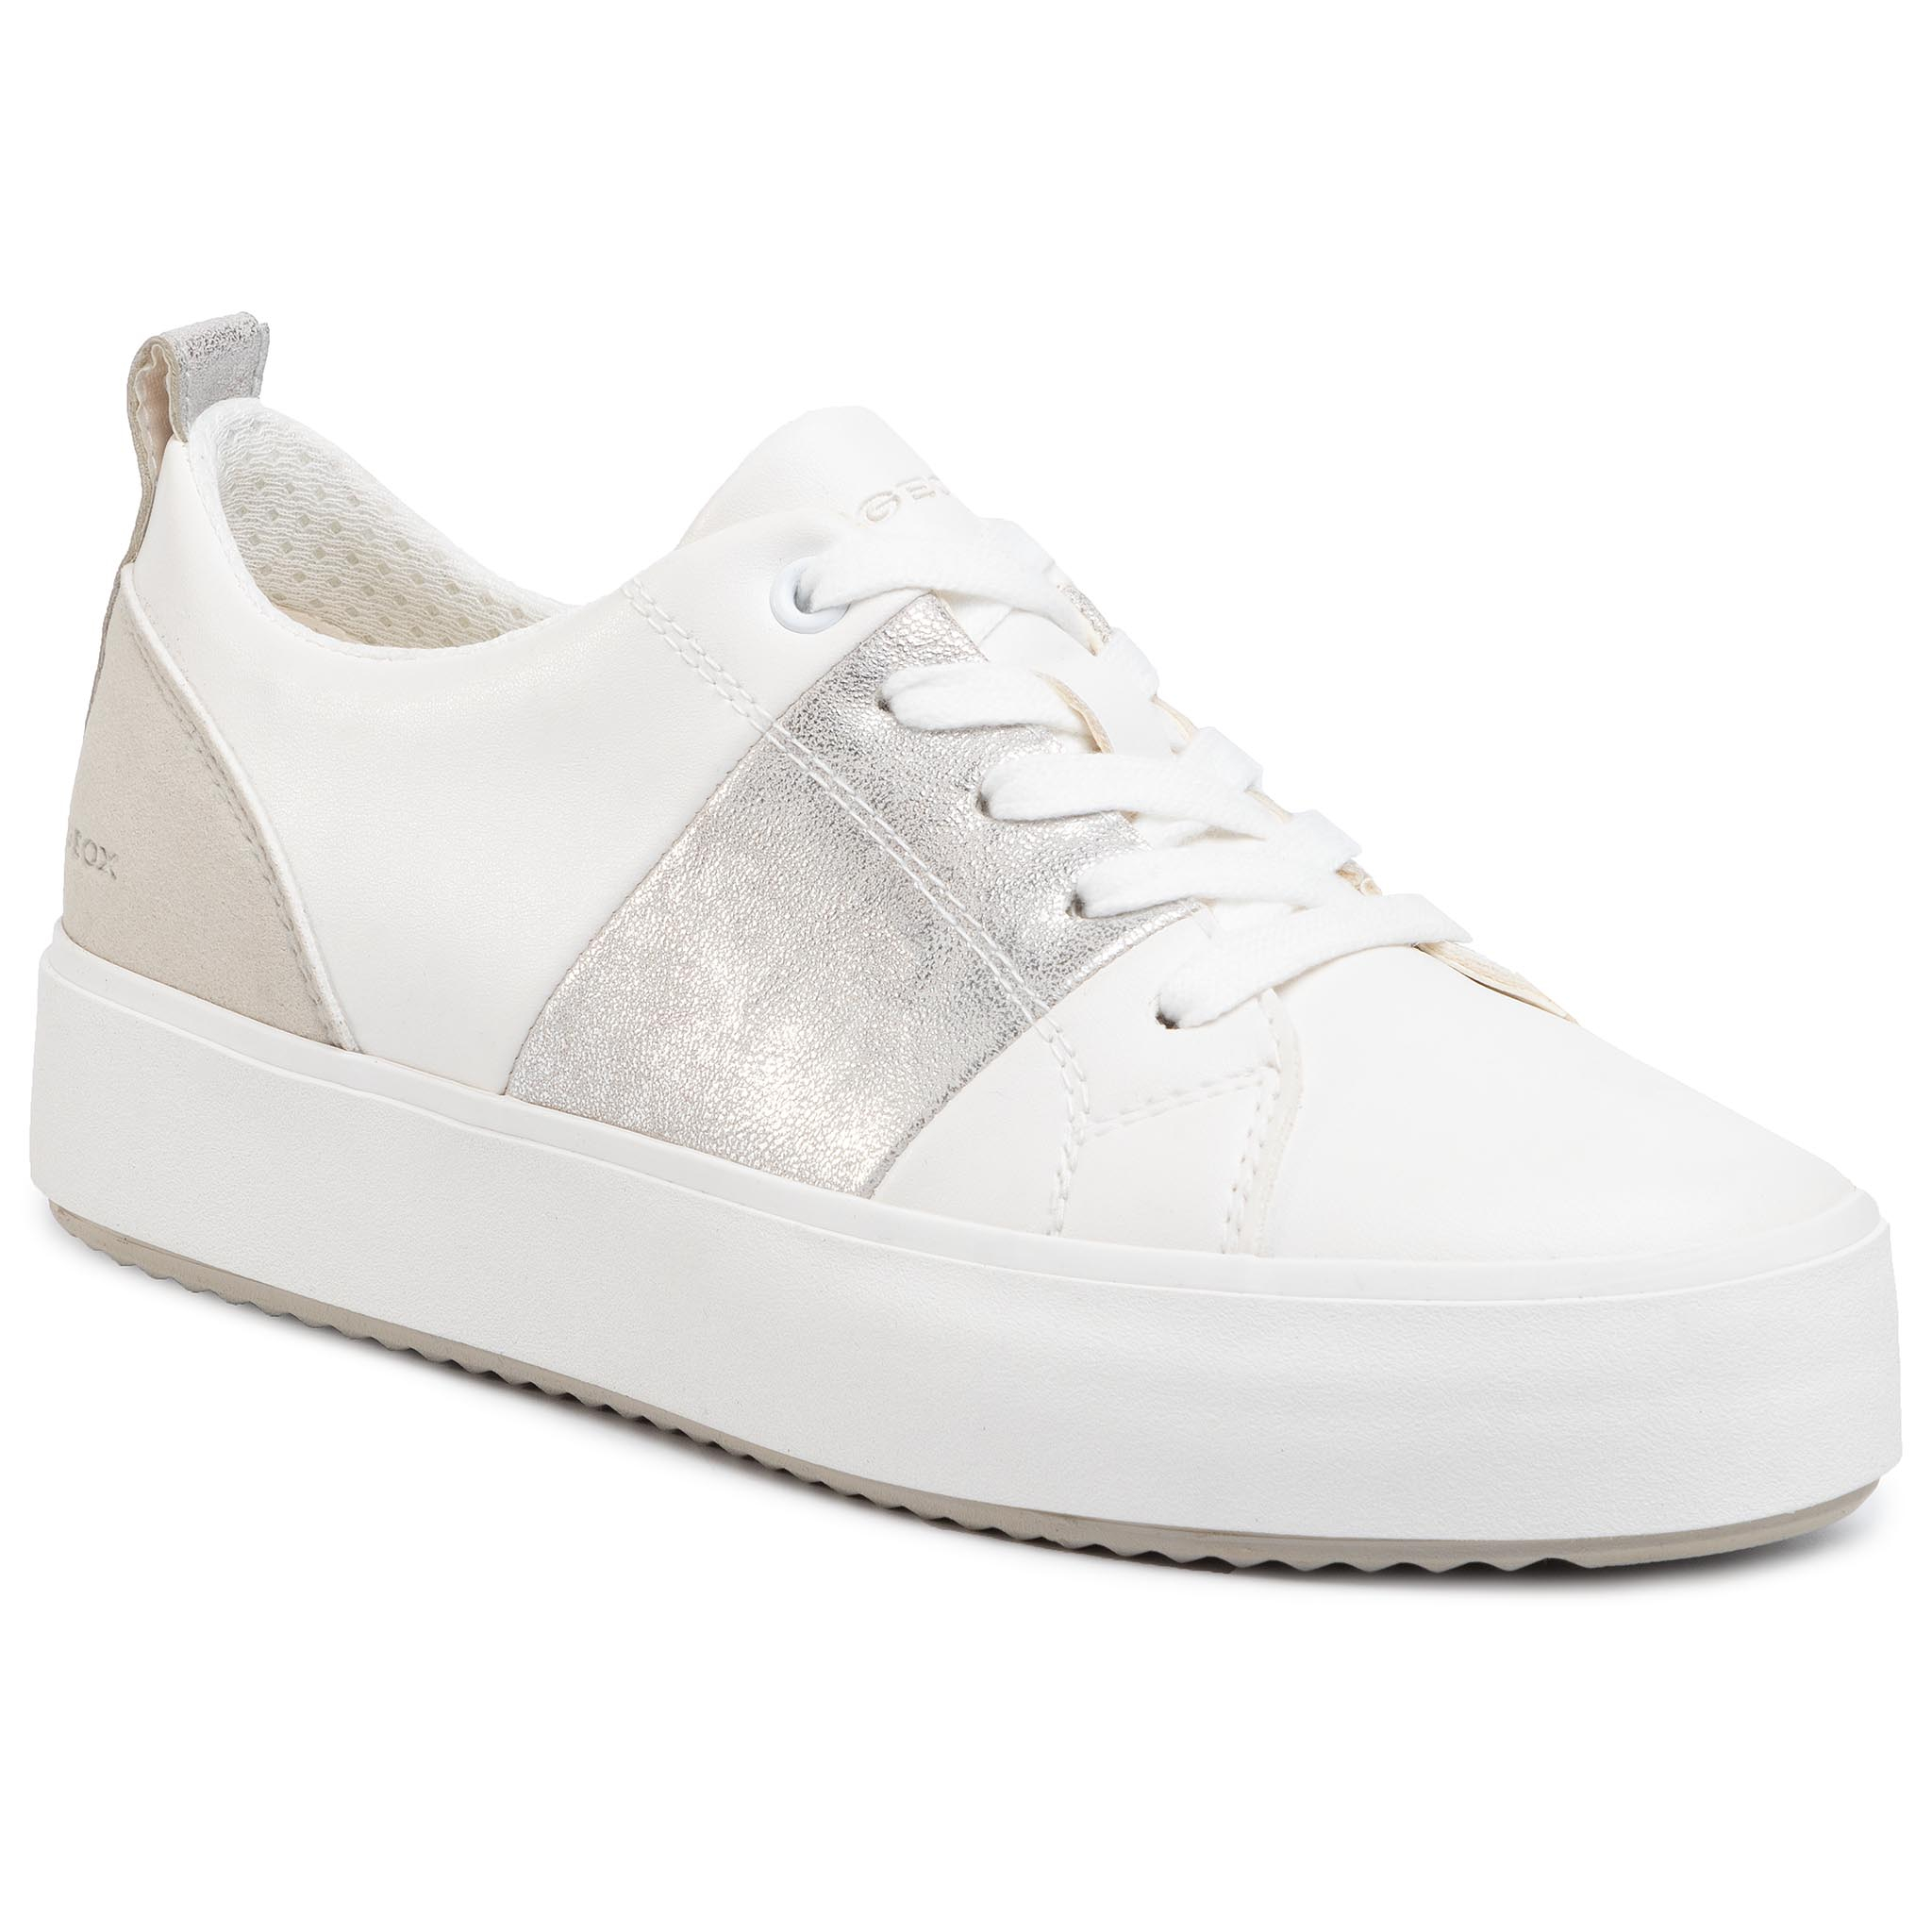 Sneakers GEOX - D Blomiee H. A D02DZA 0BCBN C0007 White/Silver